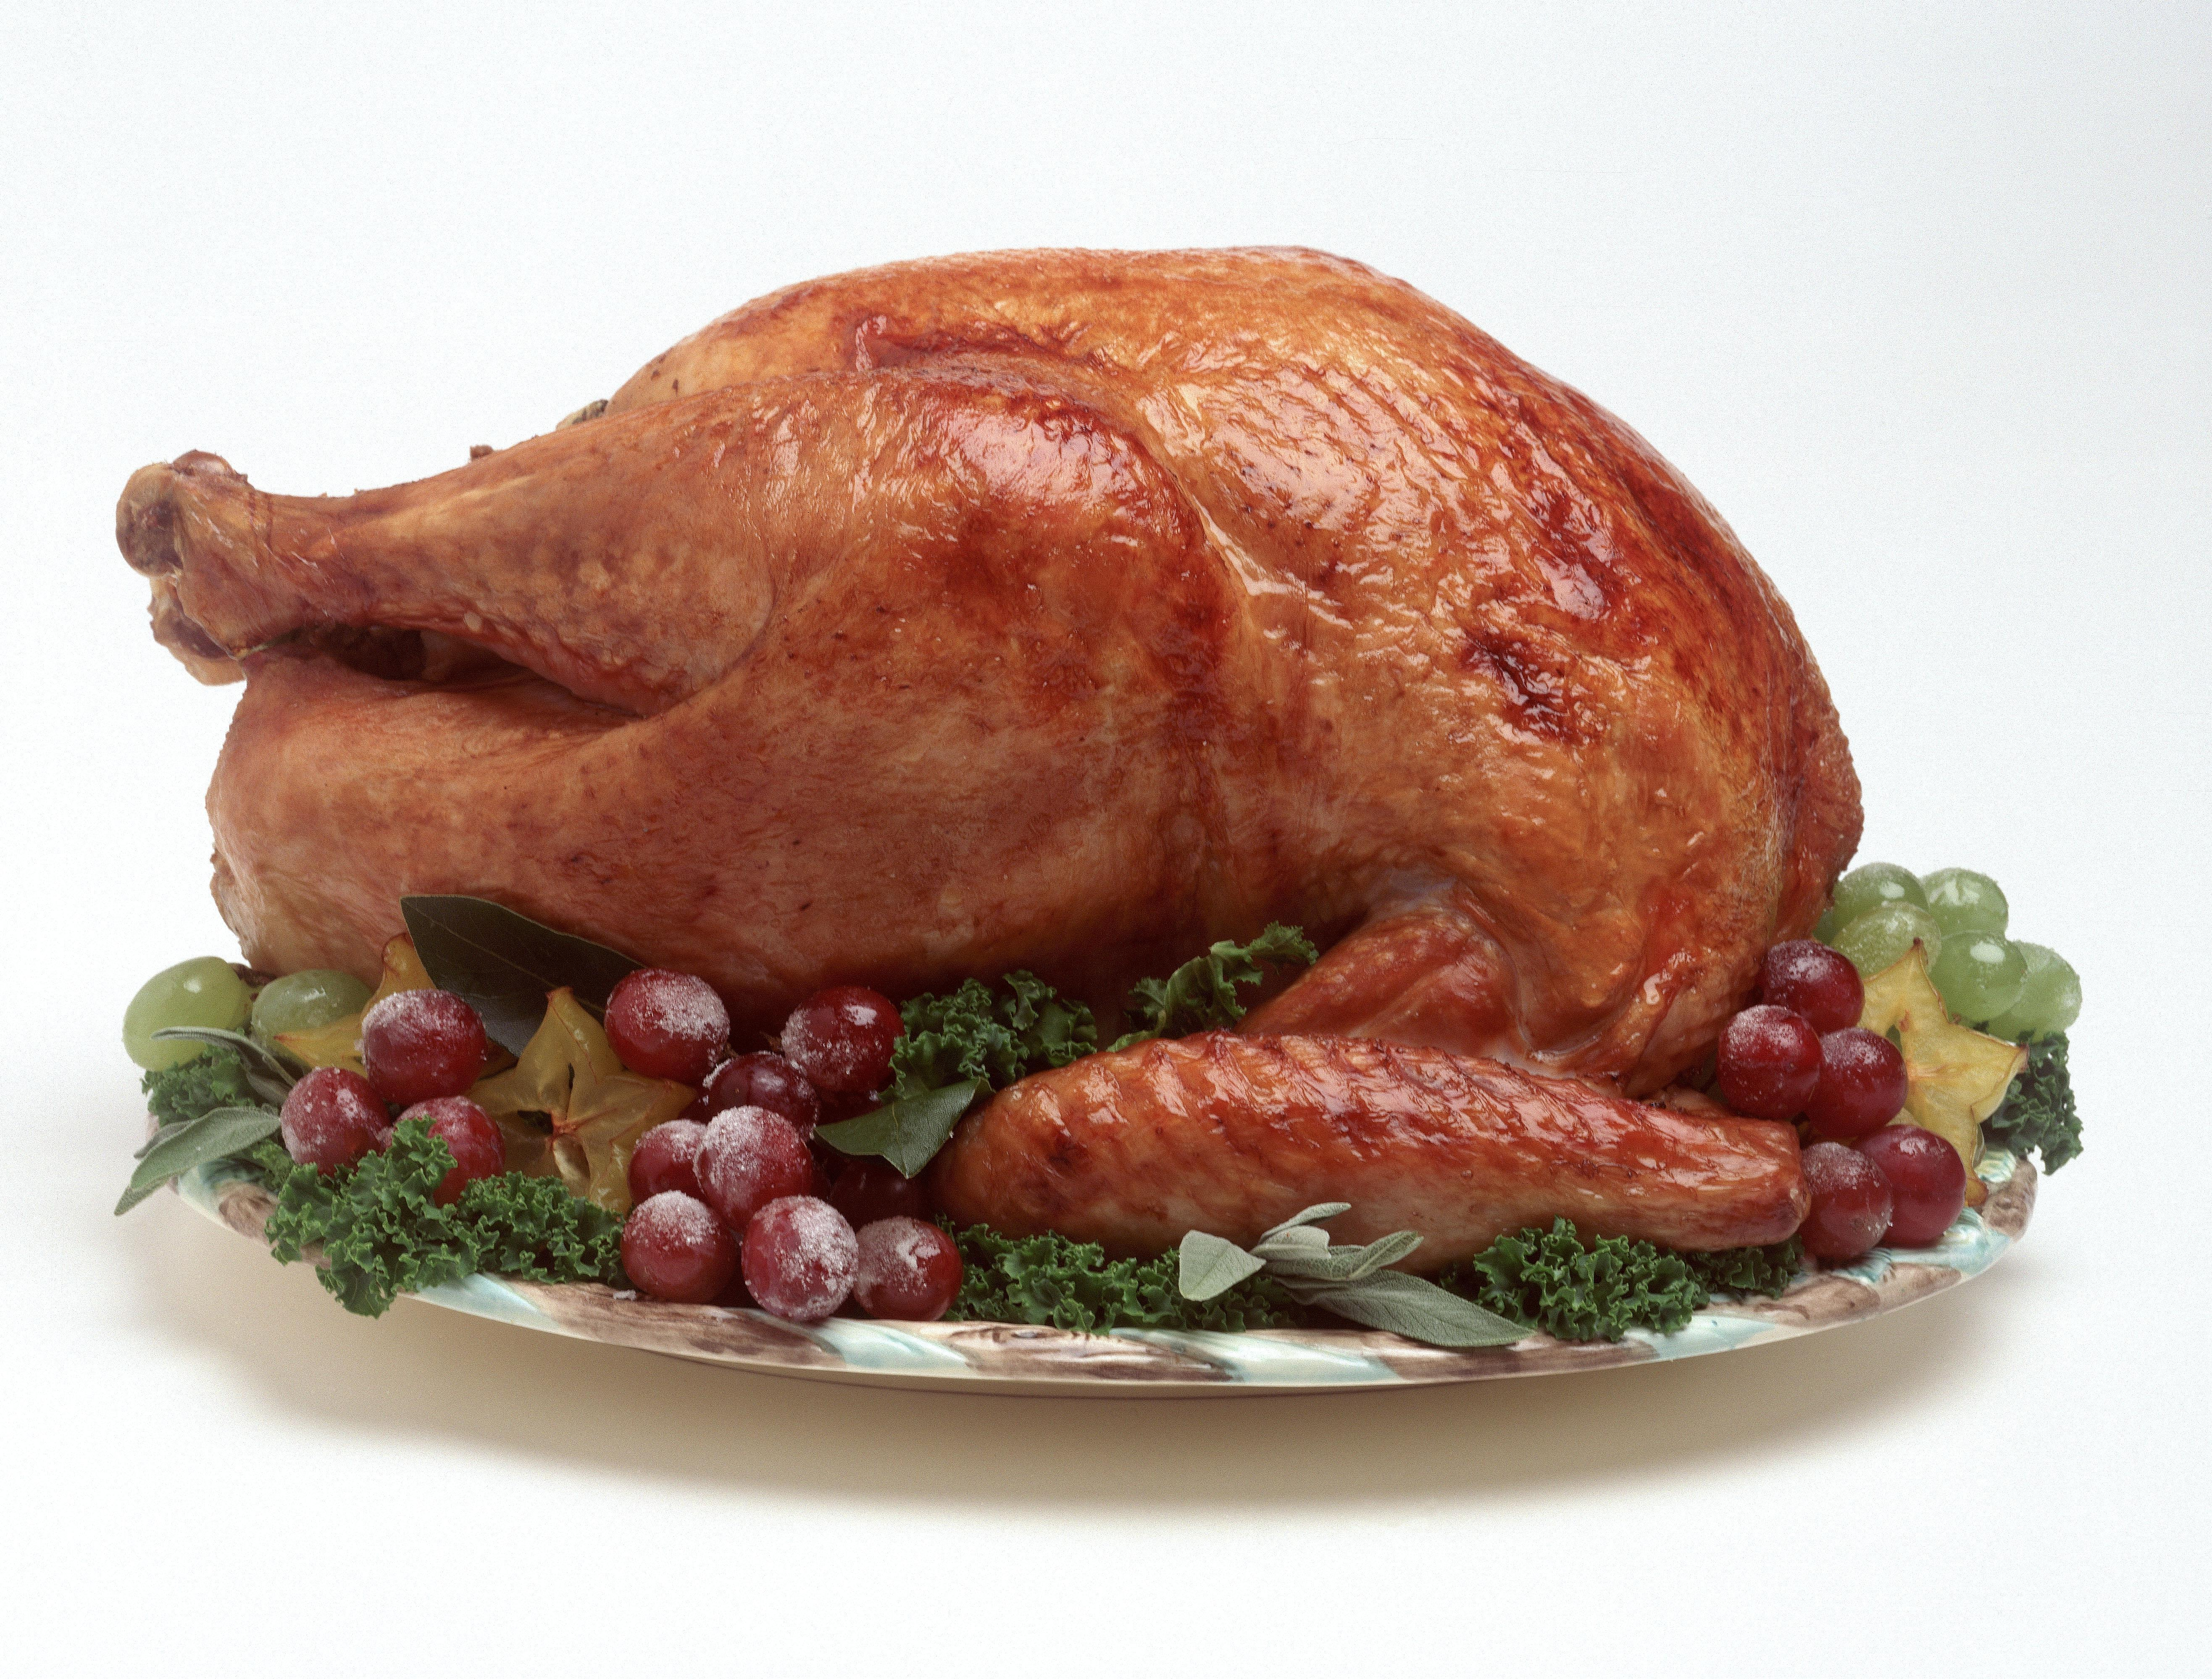 01cc8355654f3d1d46056dcbb305b429 Brits 'will be forced to eat chlorine-washed turkey for Christmas' if we relax food standards after Brexit, report warns